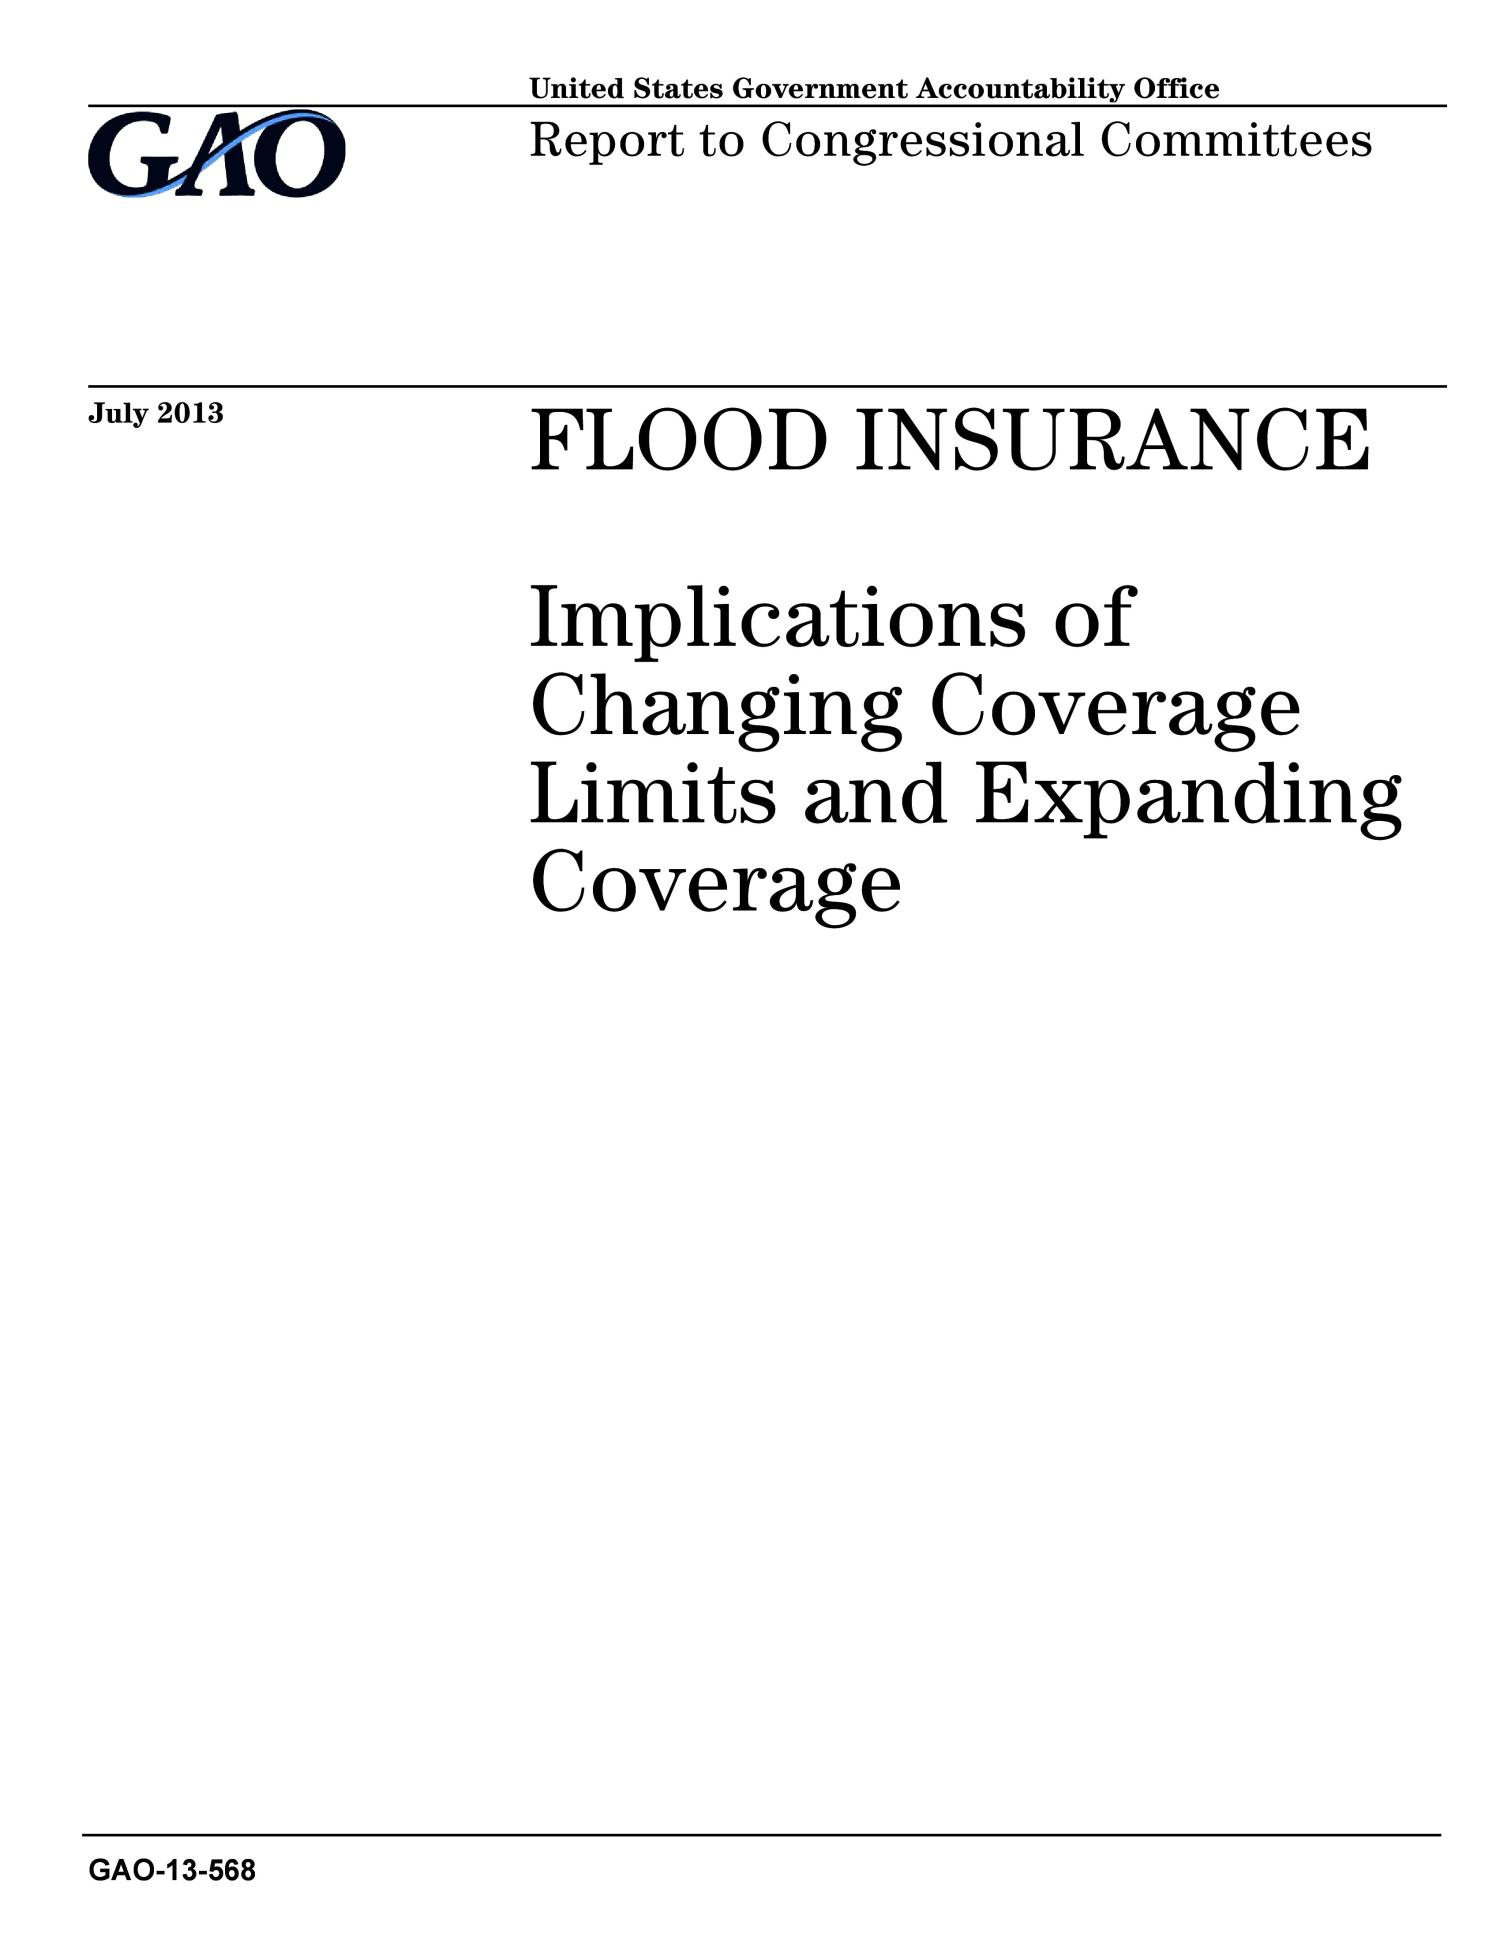 Flood Insurance: Implications of Changing Coverage Limits and Expanding Coverage                                                                                                      [Sequence #]: 1 of 42